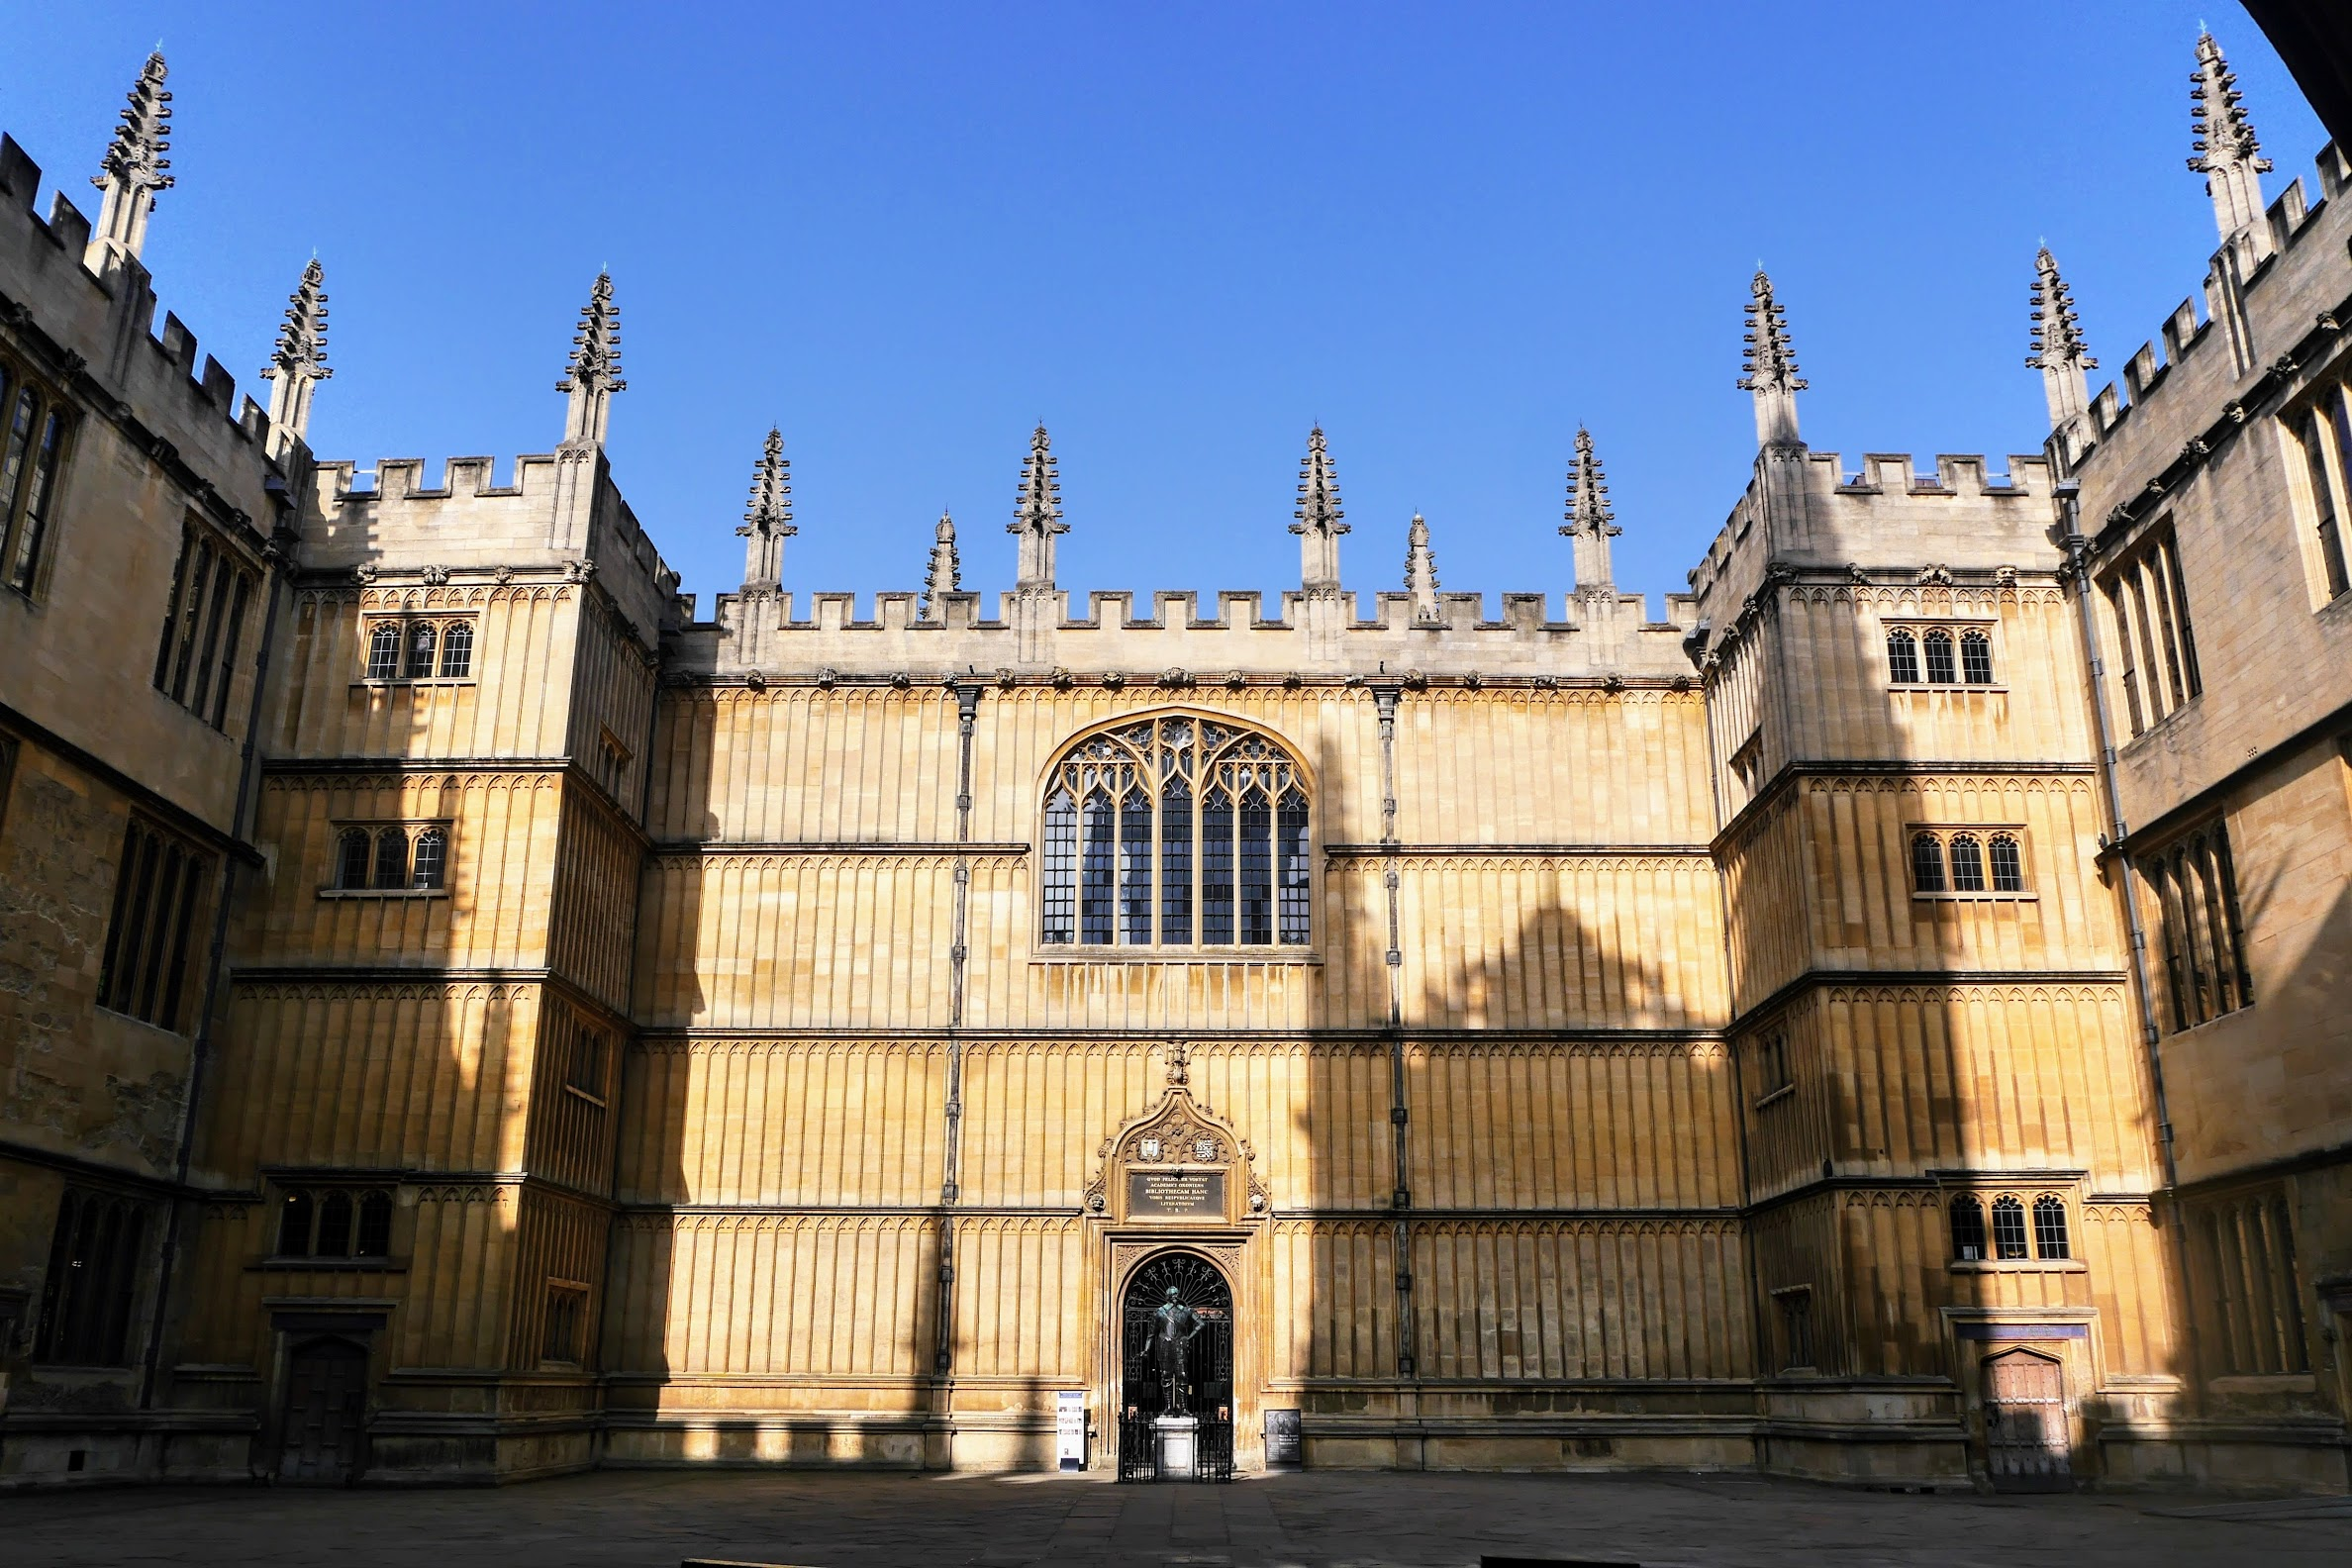 Image of the front of the Old Bodleian Library.